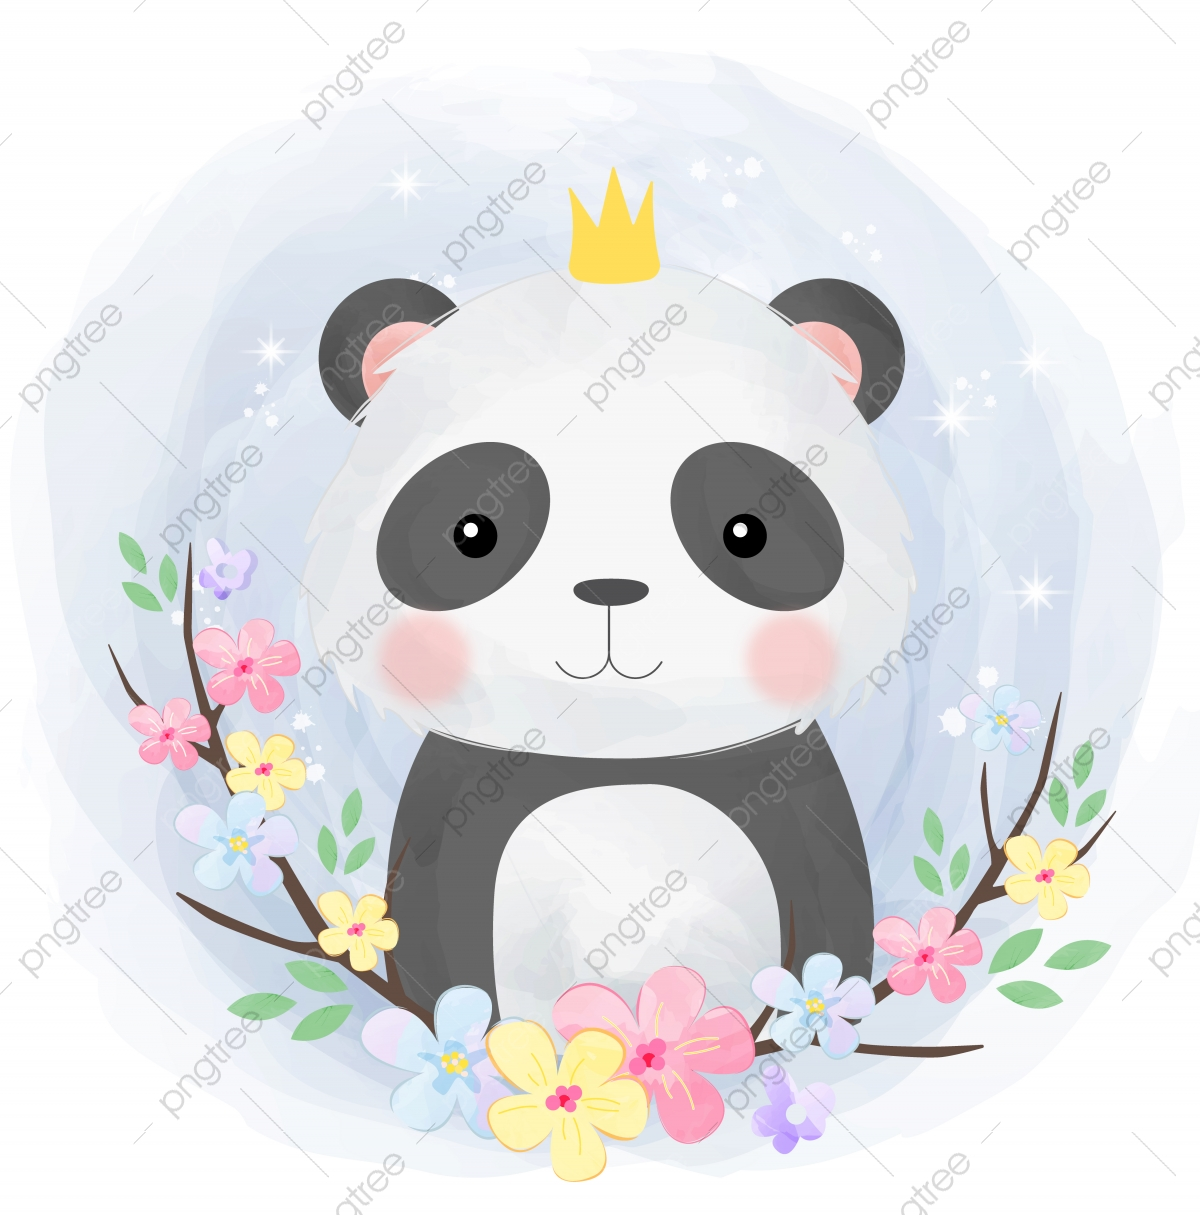 Cute Baby Panda Illustration Adorable Animal Baby Png And Vector With Transparent Background For Free Download